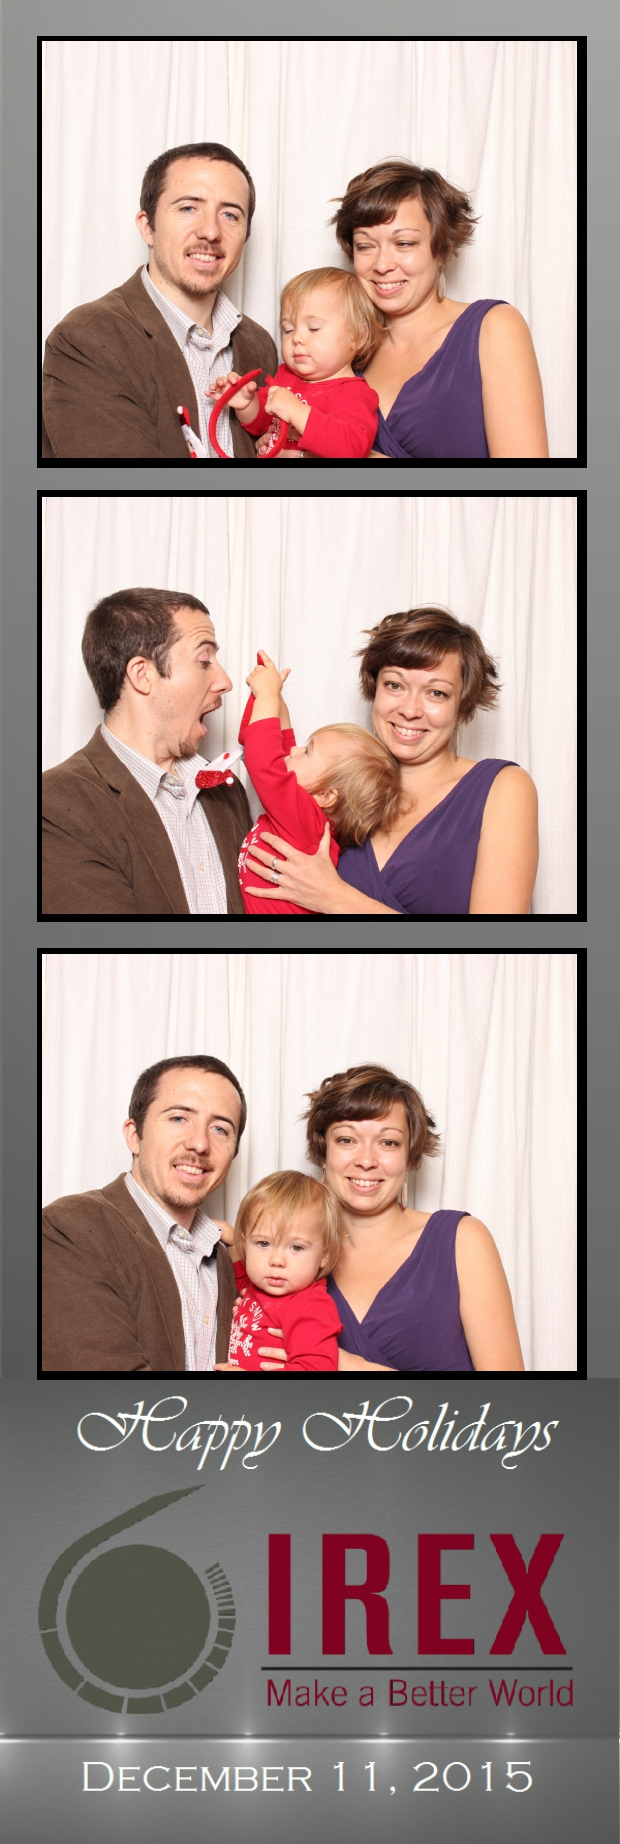 Guest House Events Photo Booth Strips IREX (82).jpg